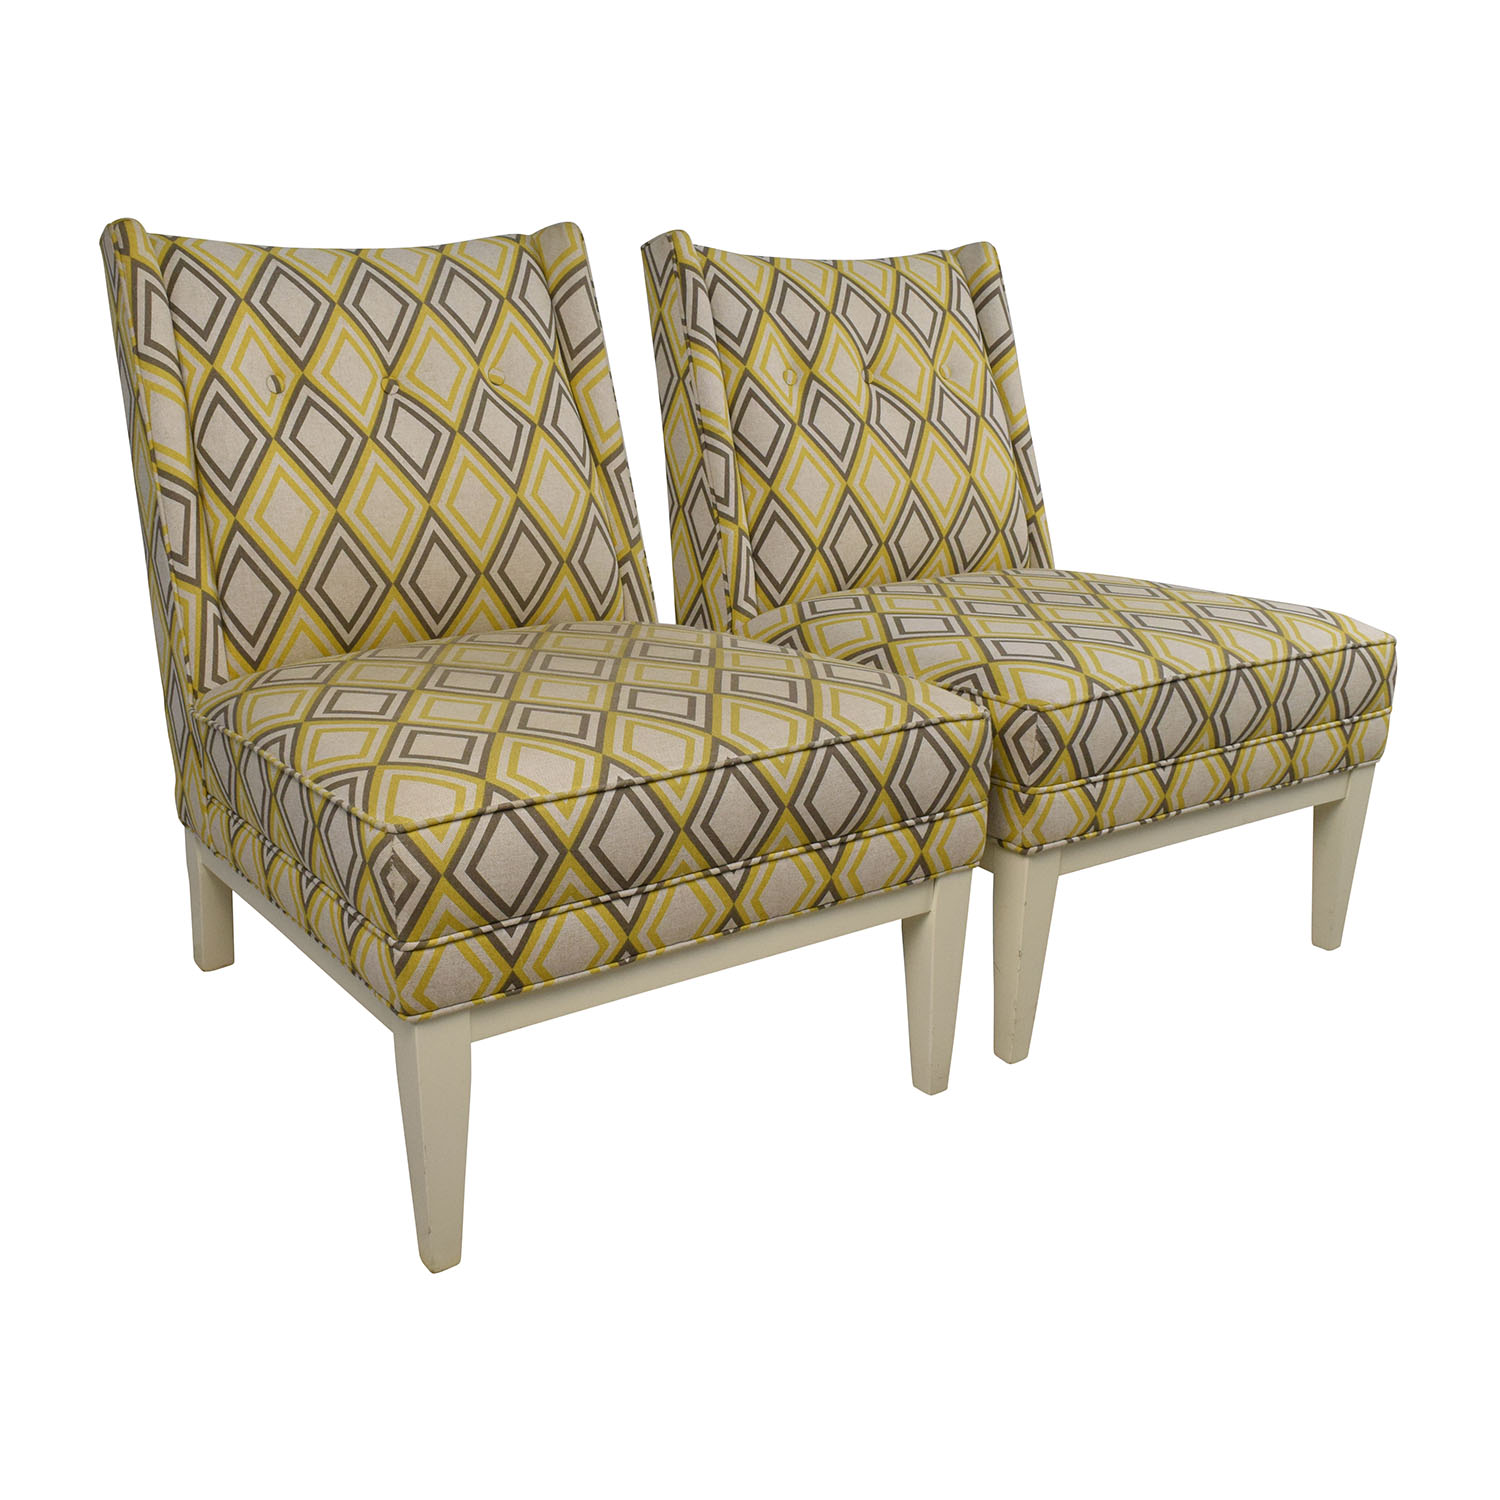 56 OFF Jonathan Adler Jonathan Adler Morrow Yellow and Gray